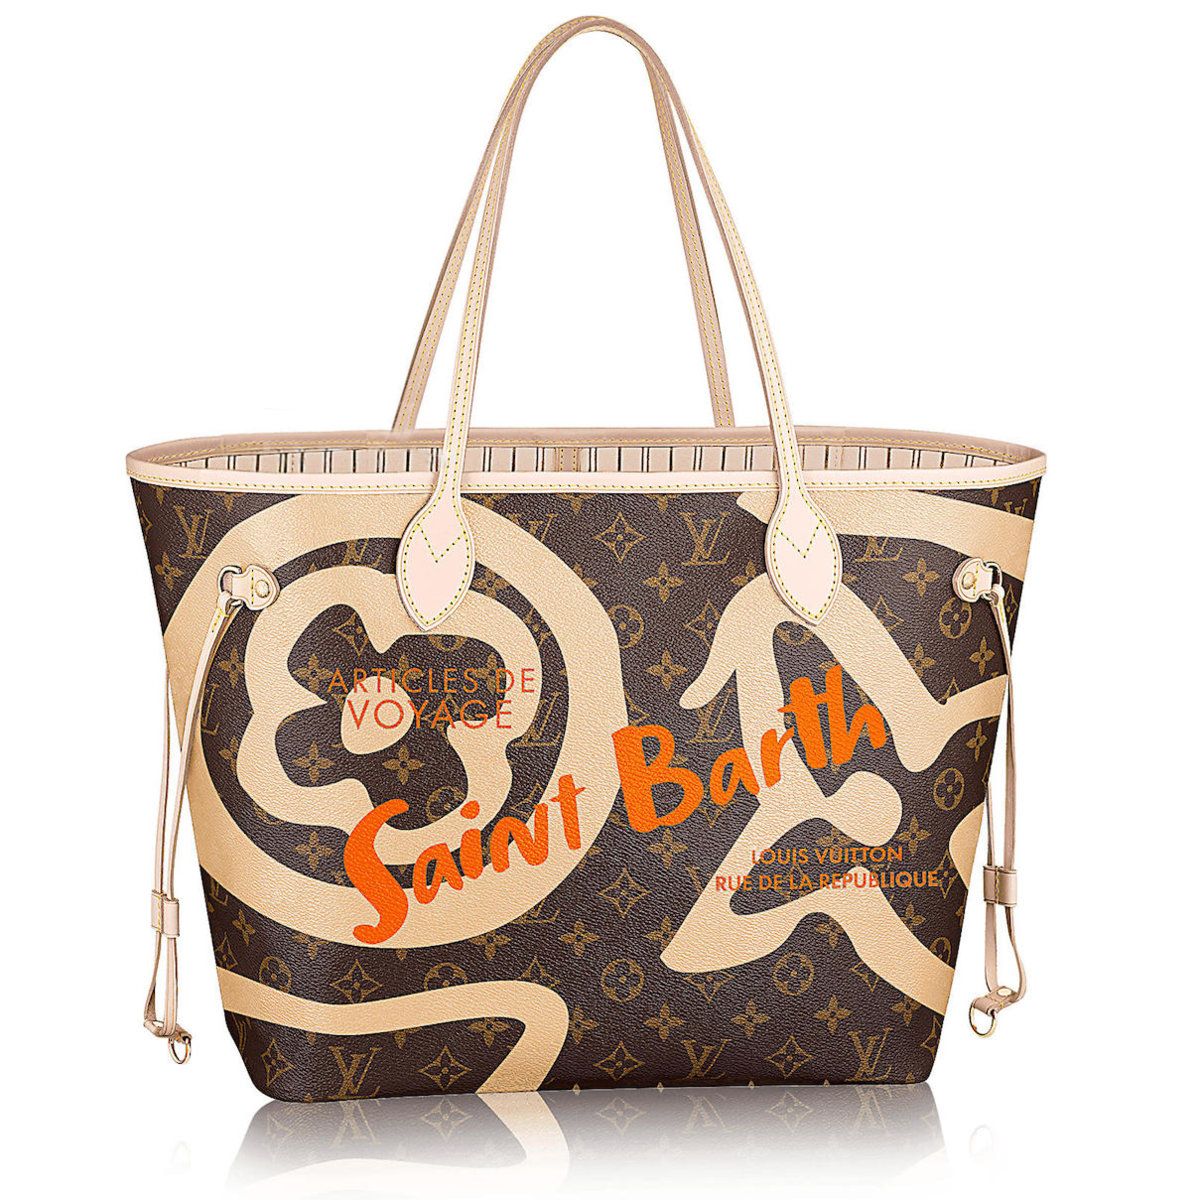 7f39d364b4f Louis Vuitton St Barts Limited Edition Neverfull Tote